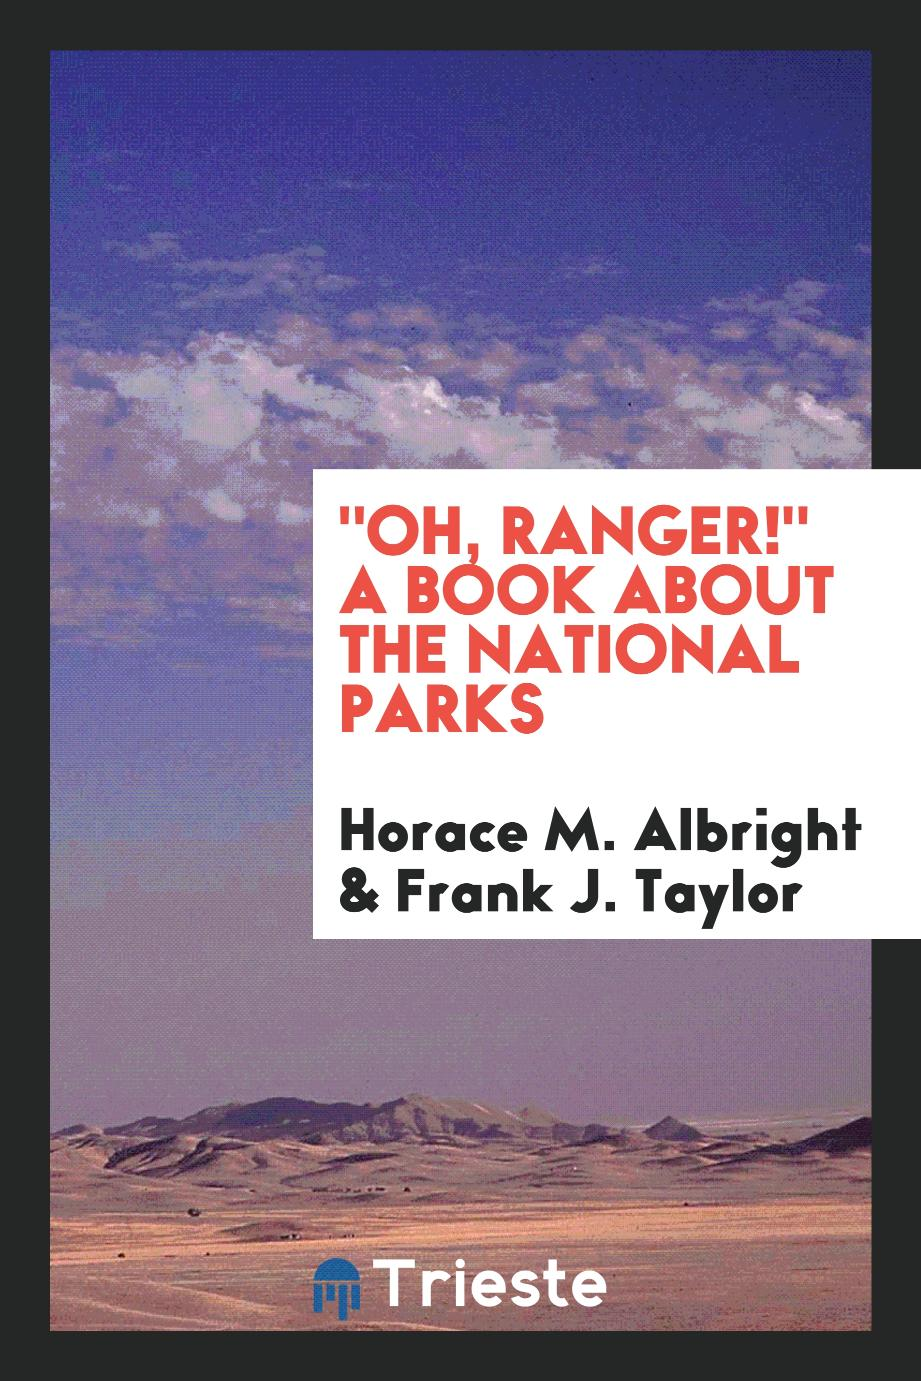 """Oh, ranger!"" A book about the national parks"